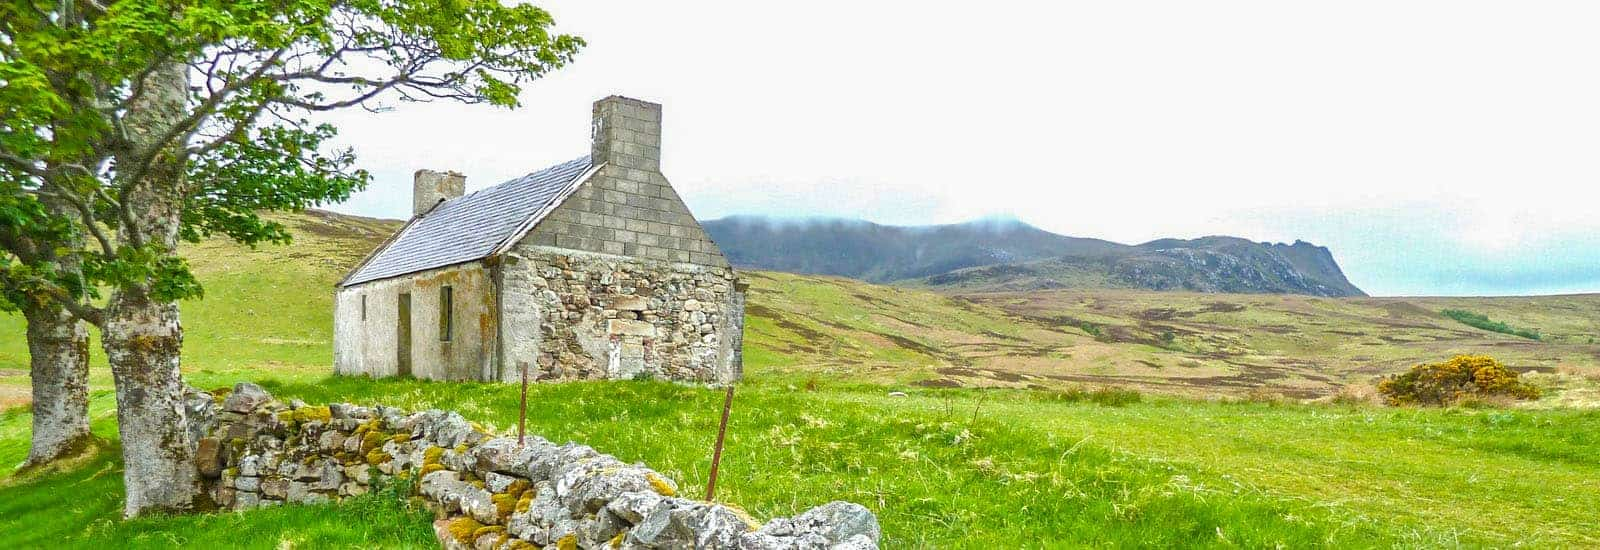 cottage in the green fields of ierland